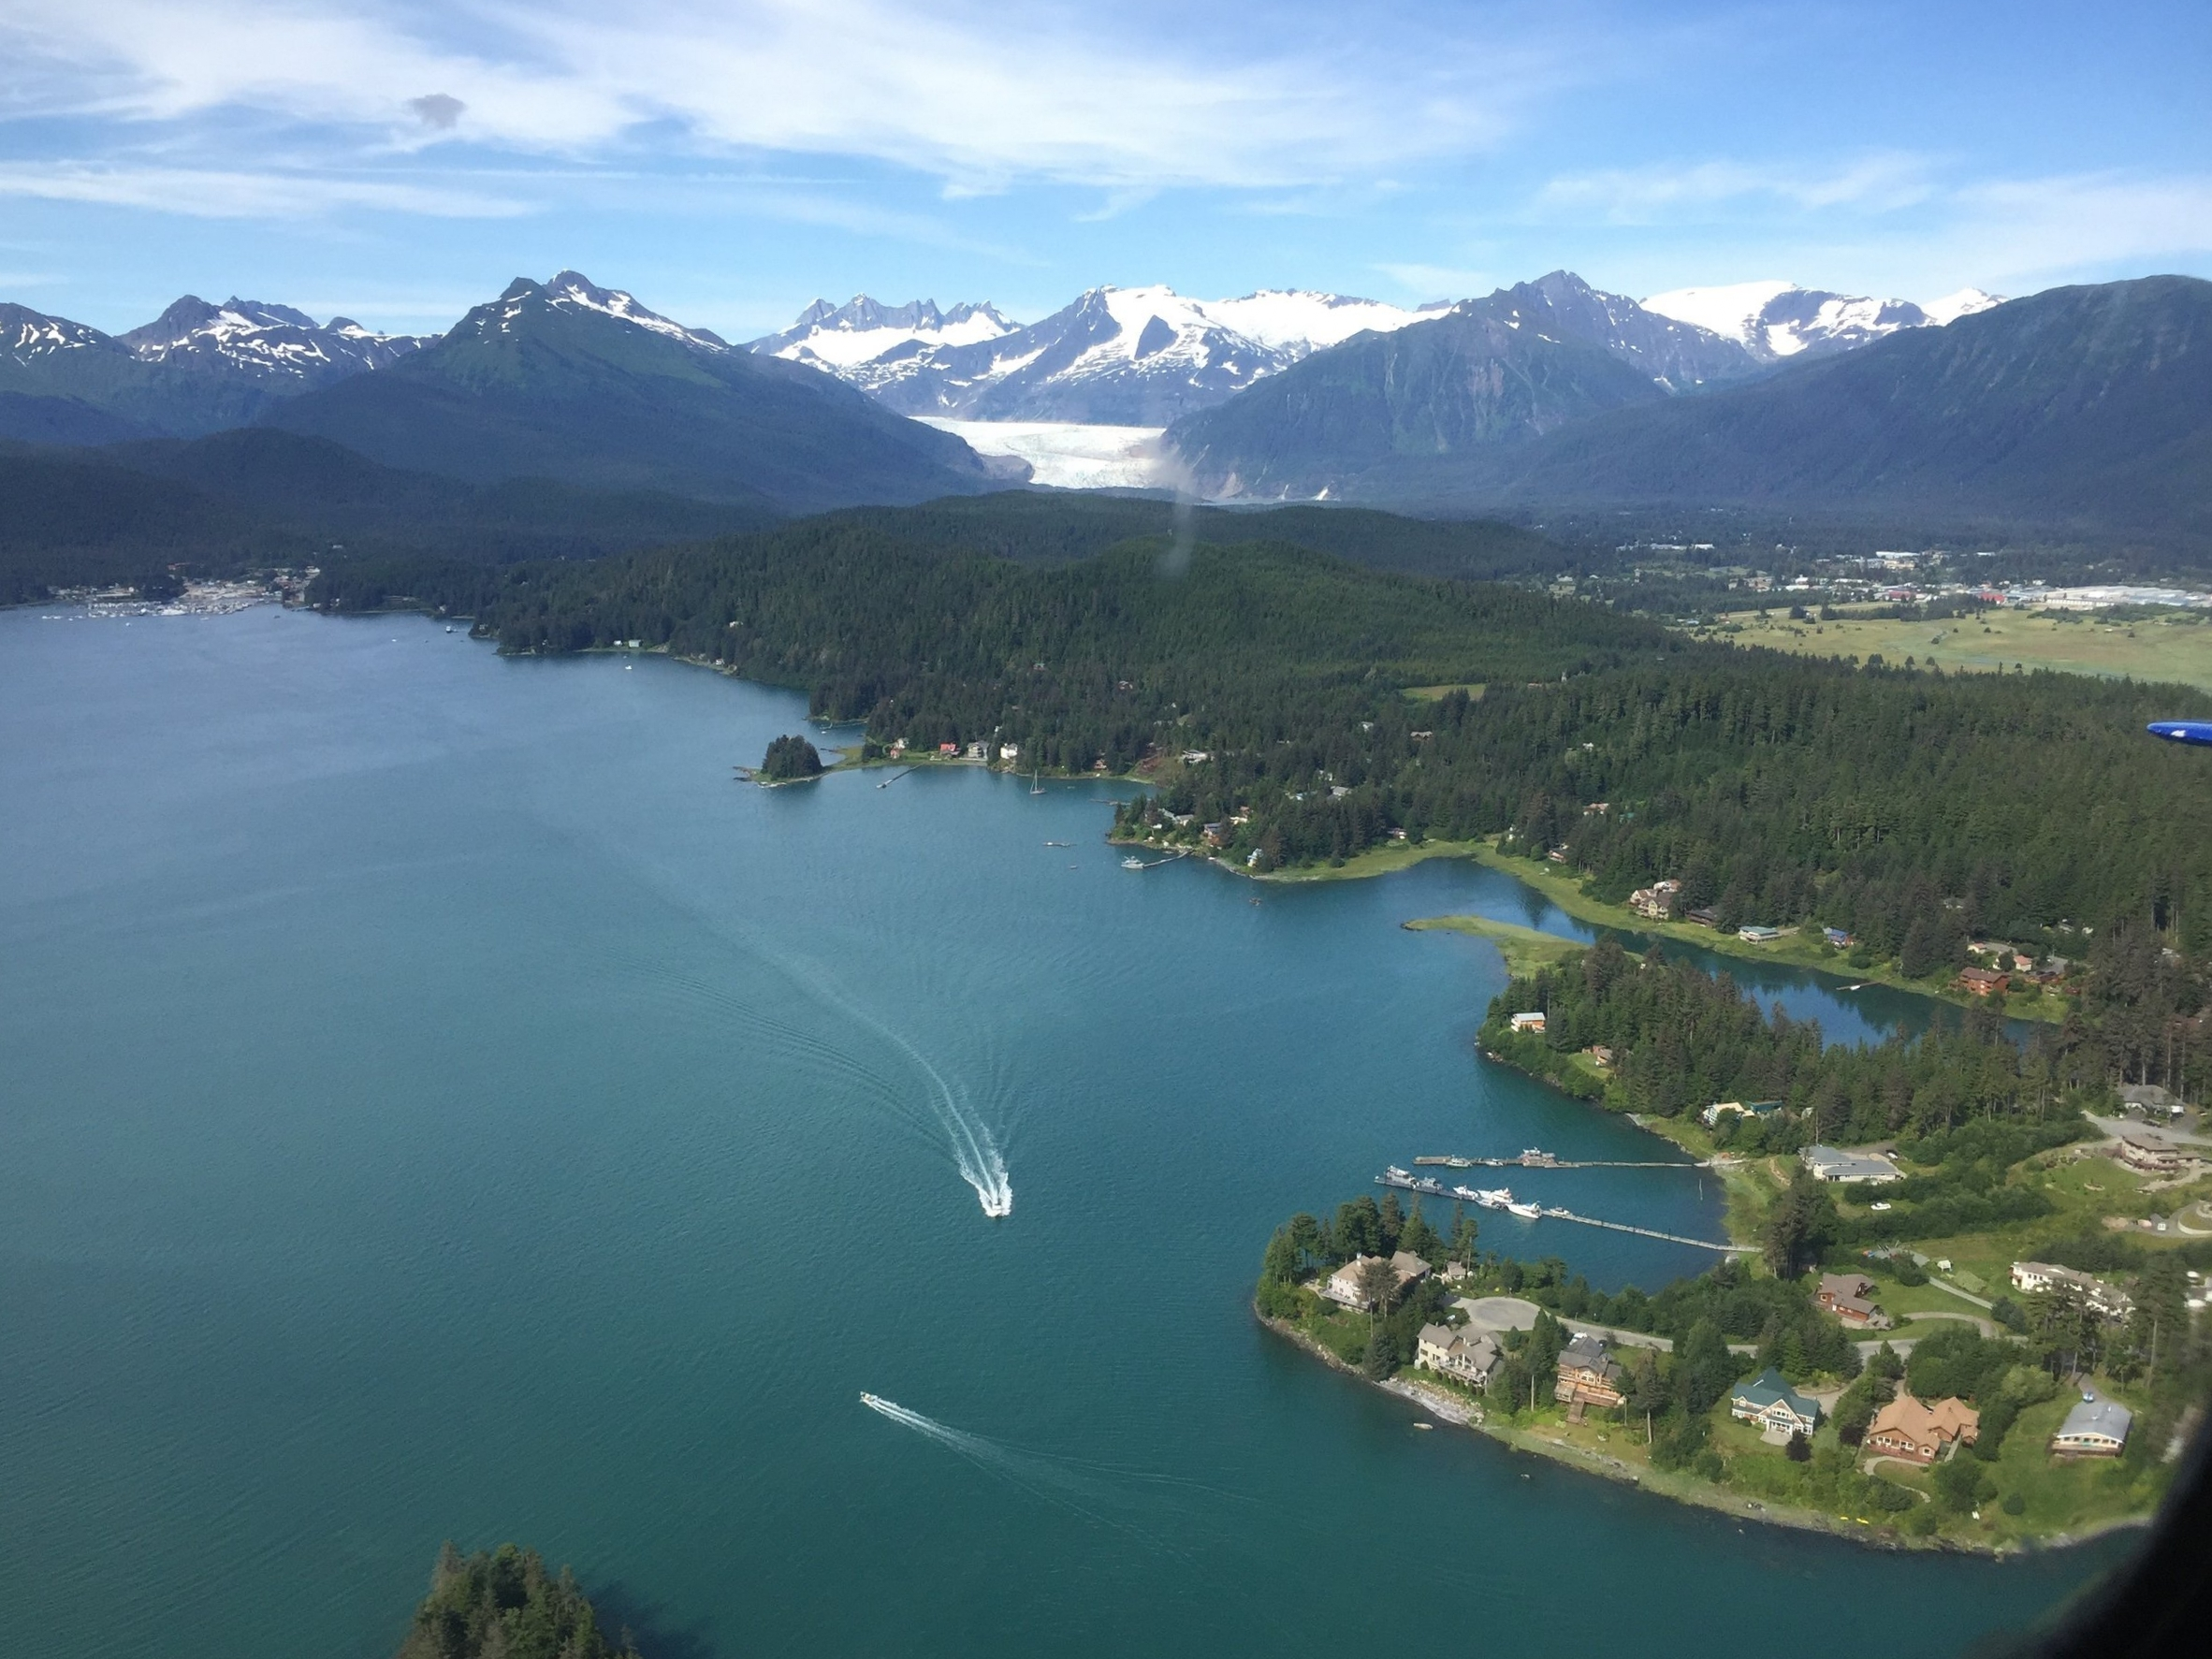 Juneau Ice Fields, Mendenhall Glacier, Auke Bay- Fishing and Whale Watching with Forty Ninth Fathom Charters